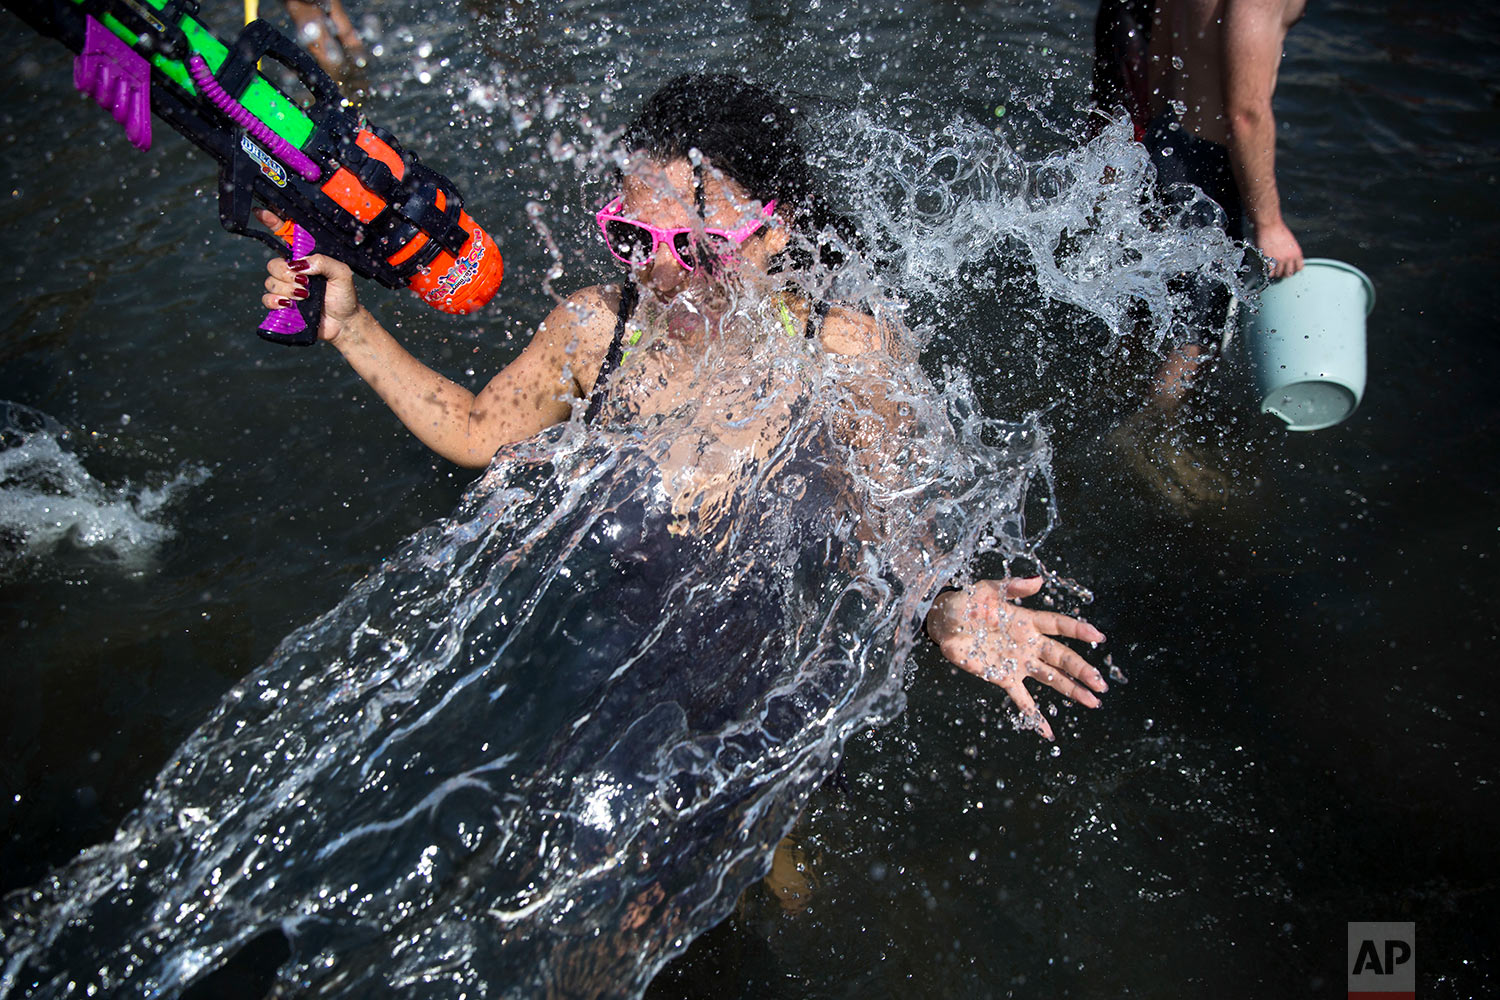 People spray water during a water fight club event attended by several hundred people, and held annually to mark the start of the summer vacation, at Habima Square, in central Tel Aviv, Israel, Friday, July 6, 2018. (AP Photo/Oded Balilty)